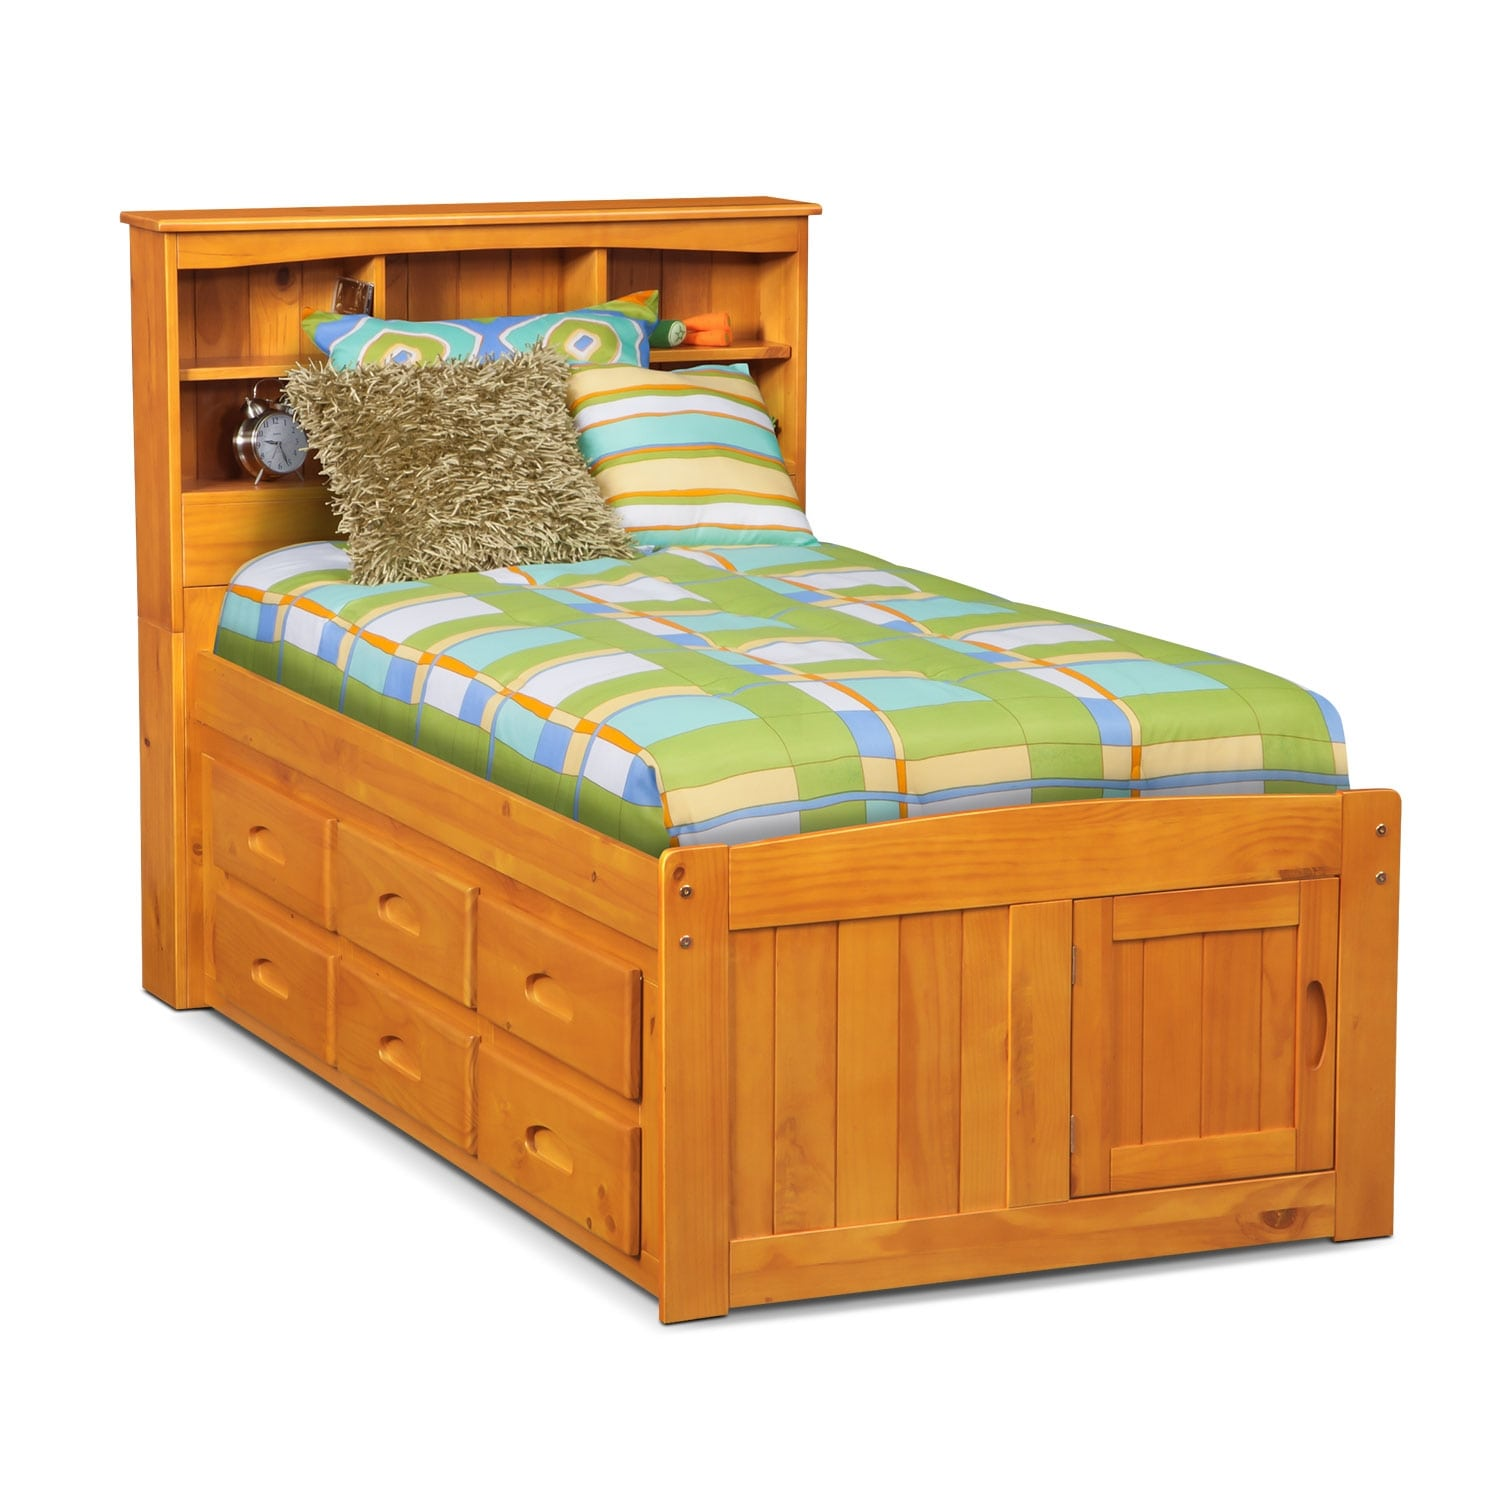 Ranger twin bookcase bed with 6 underbed drawers pine american signature furniture - Kids twin beds with storage drawers ...